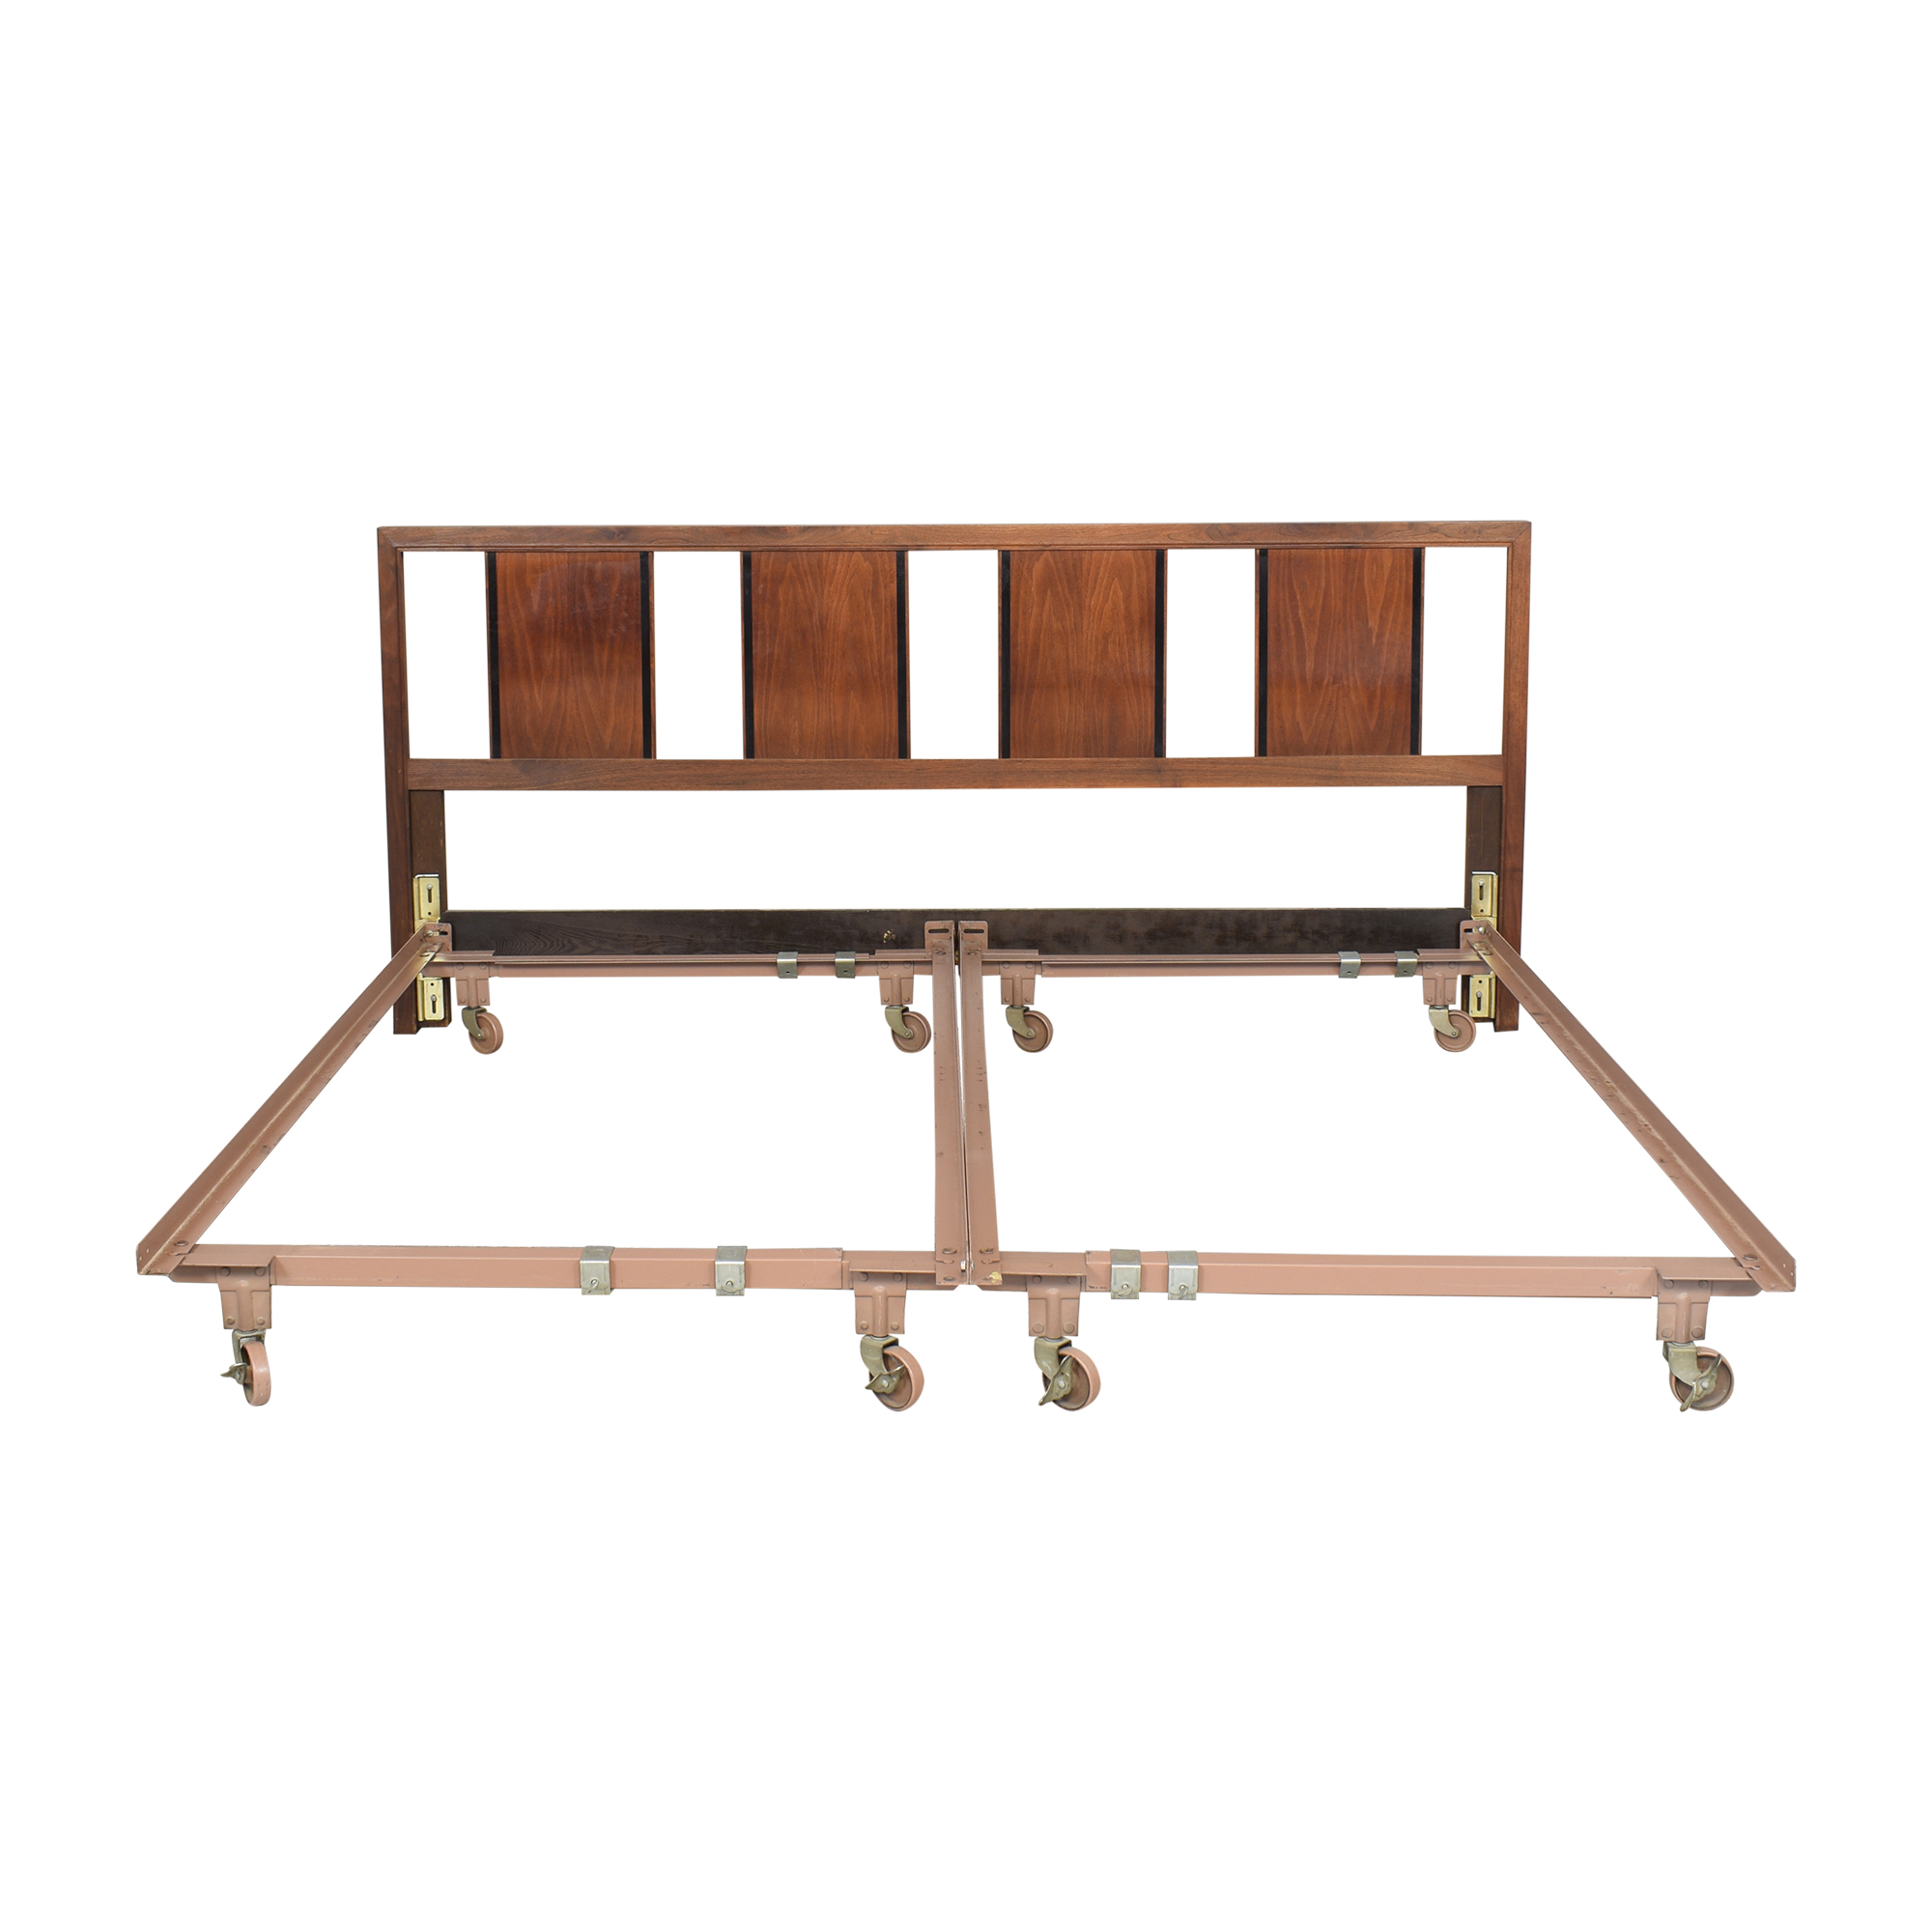 King Bed Frame with Headboard second hand